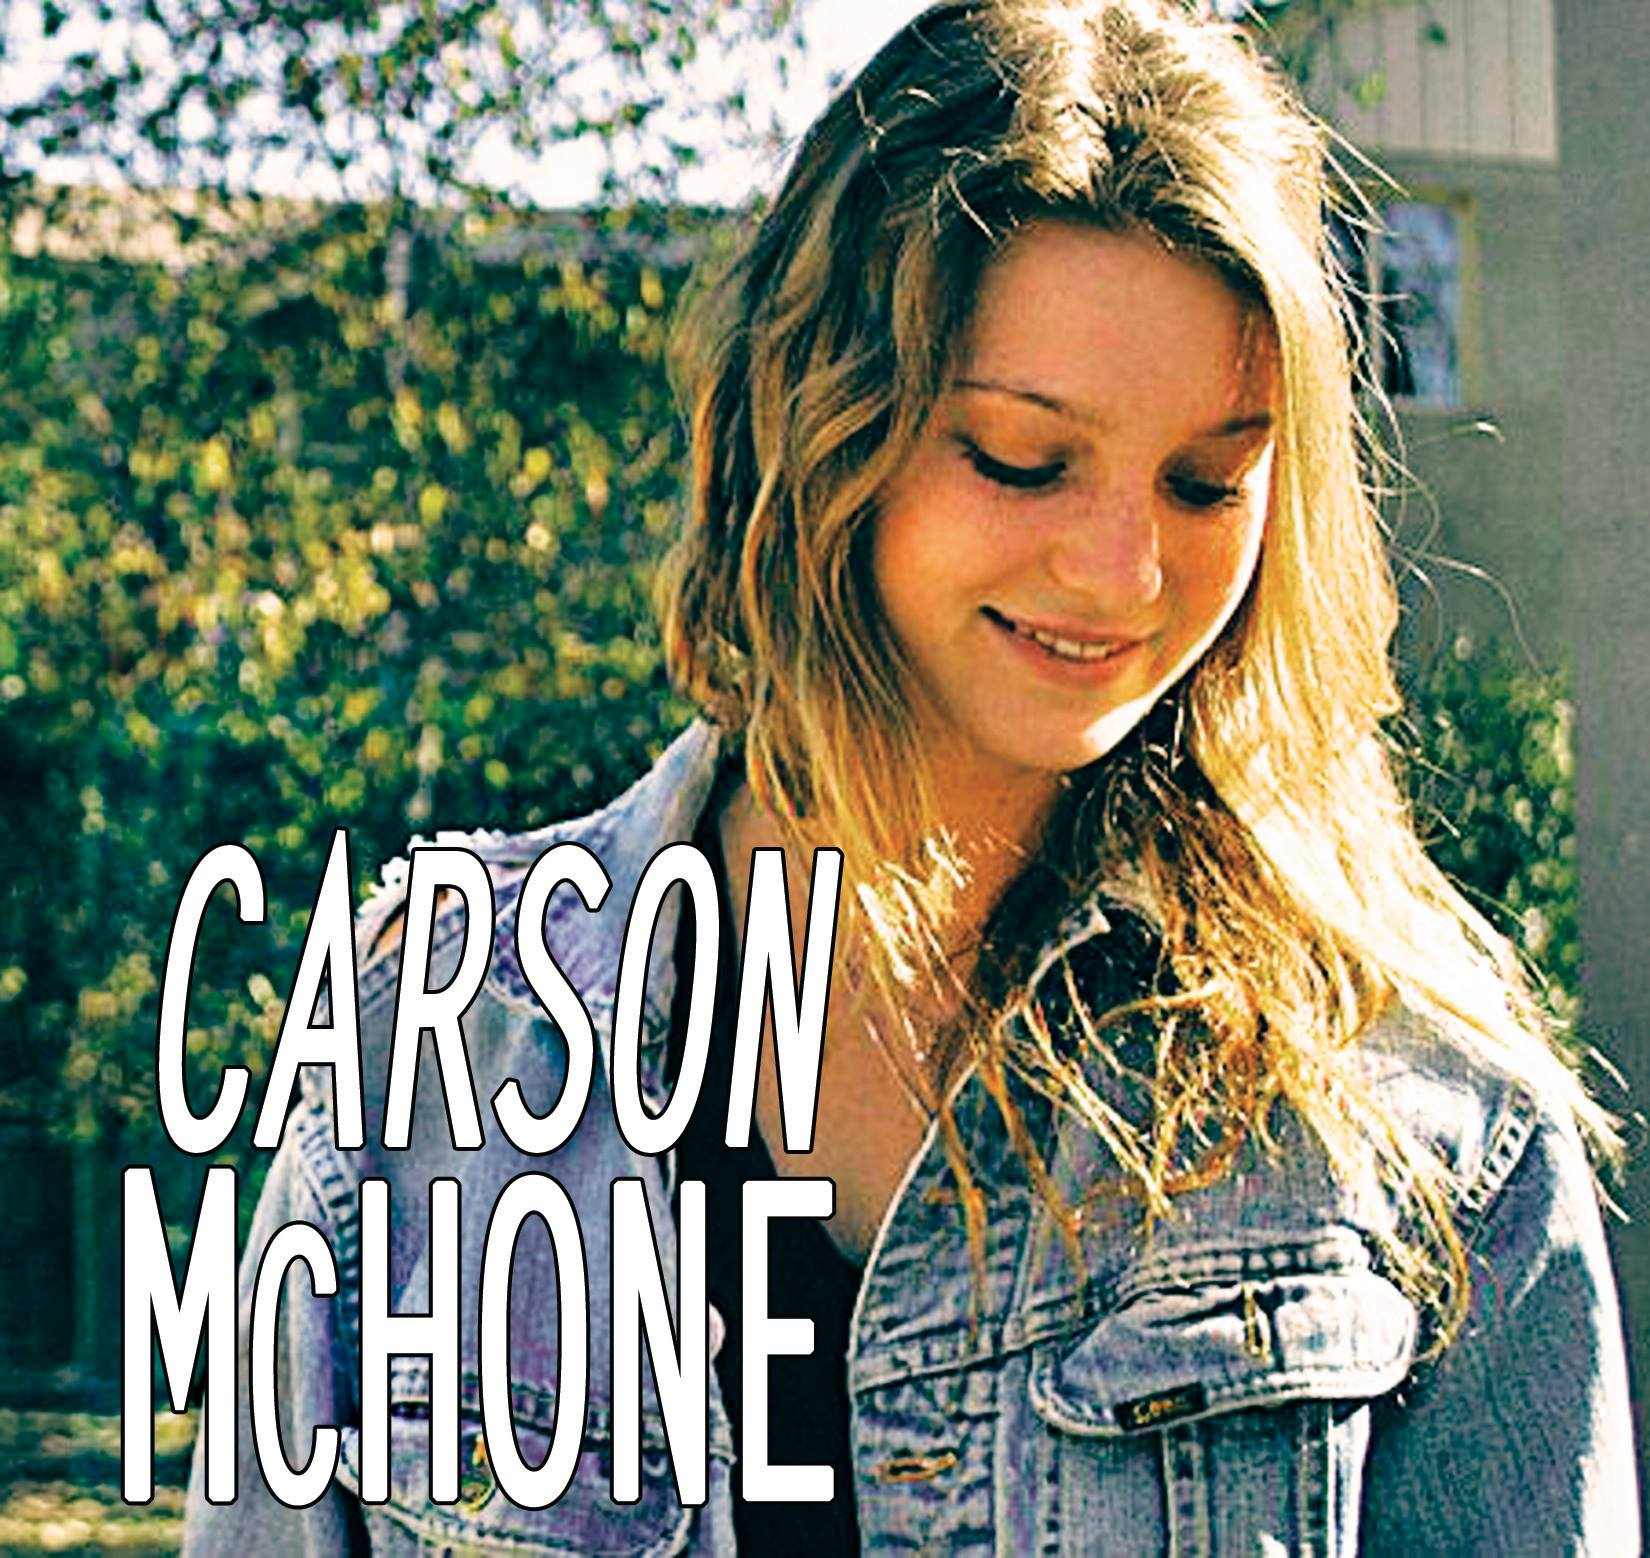 Carson mchone singer songwriter on the rise